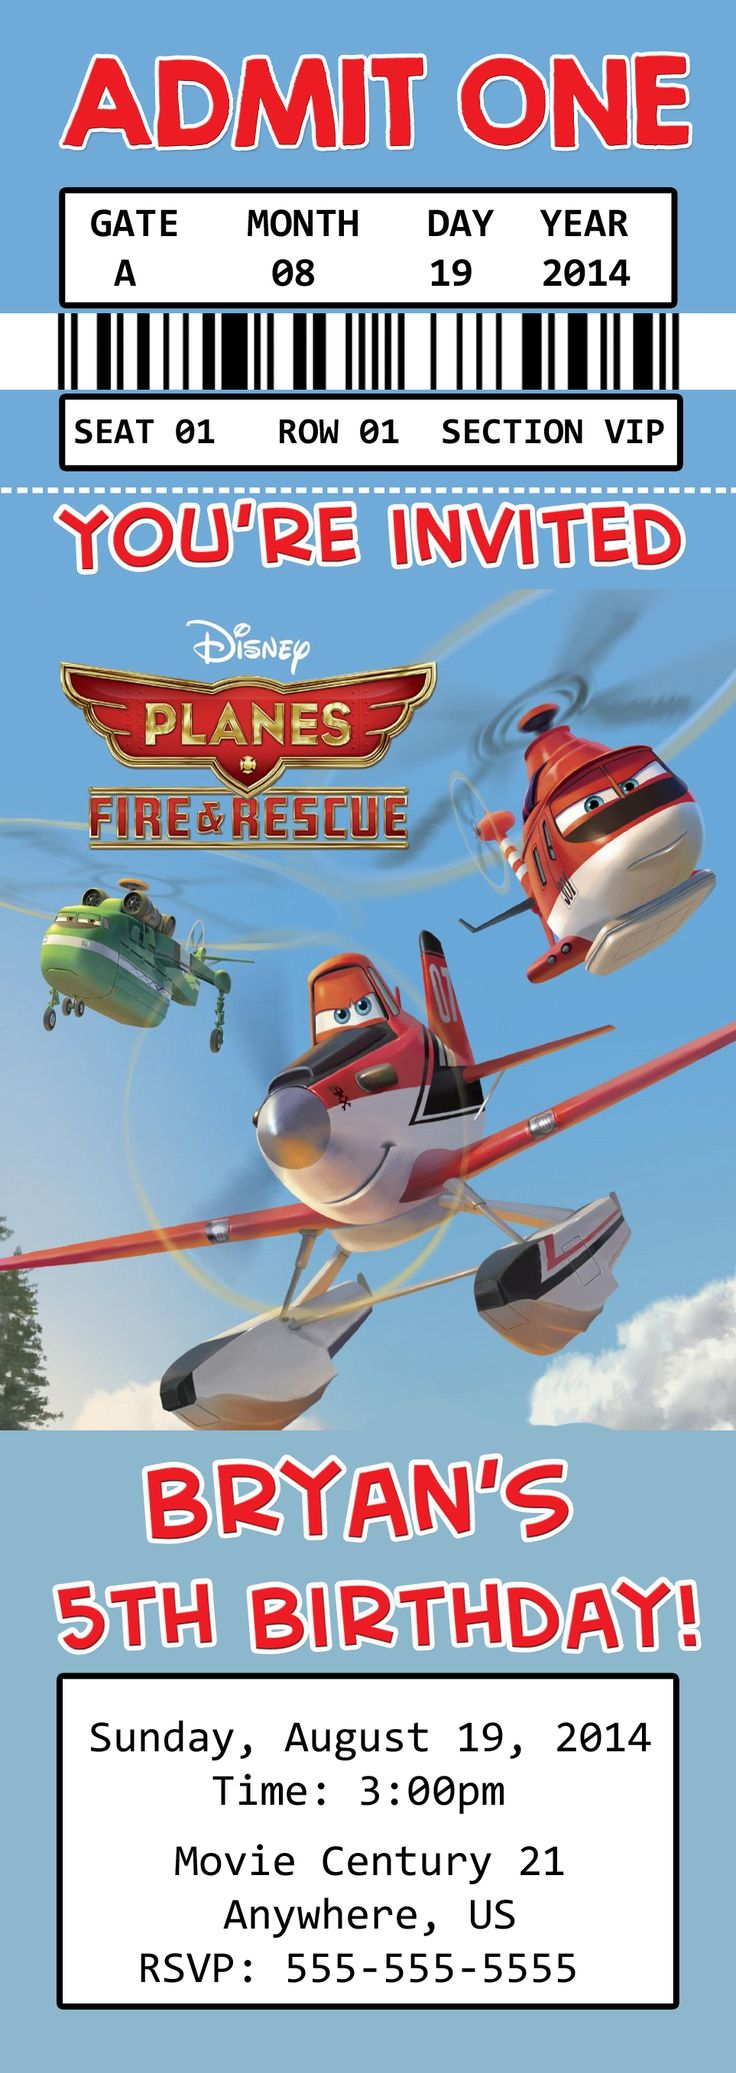 92 best cars images on Pinterest | Disney planes party, Airplane ...